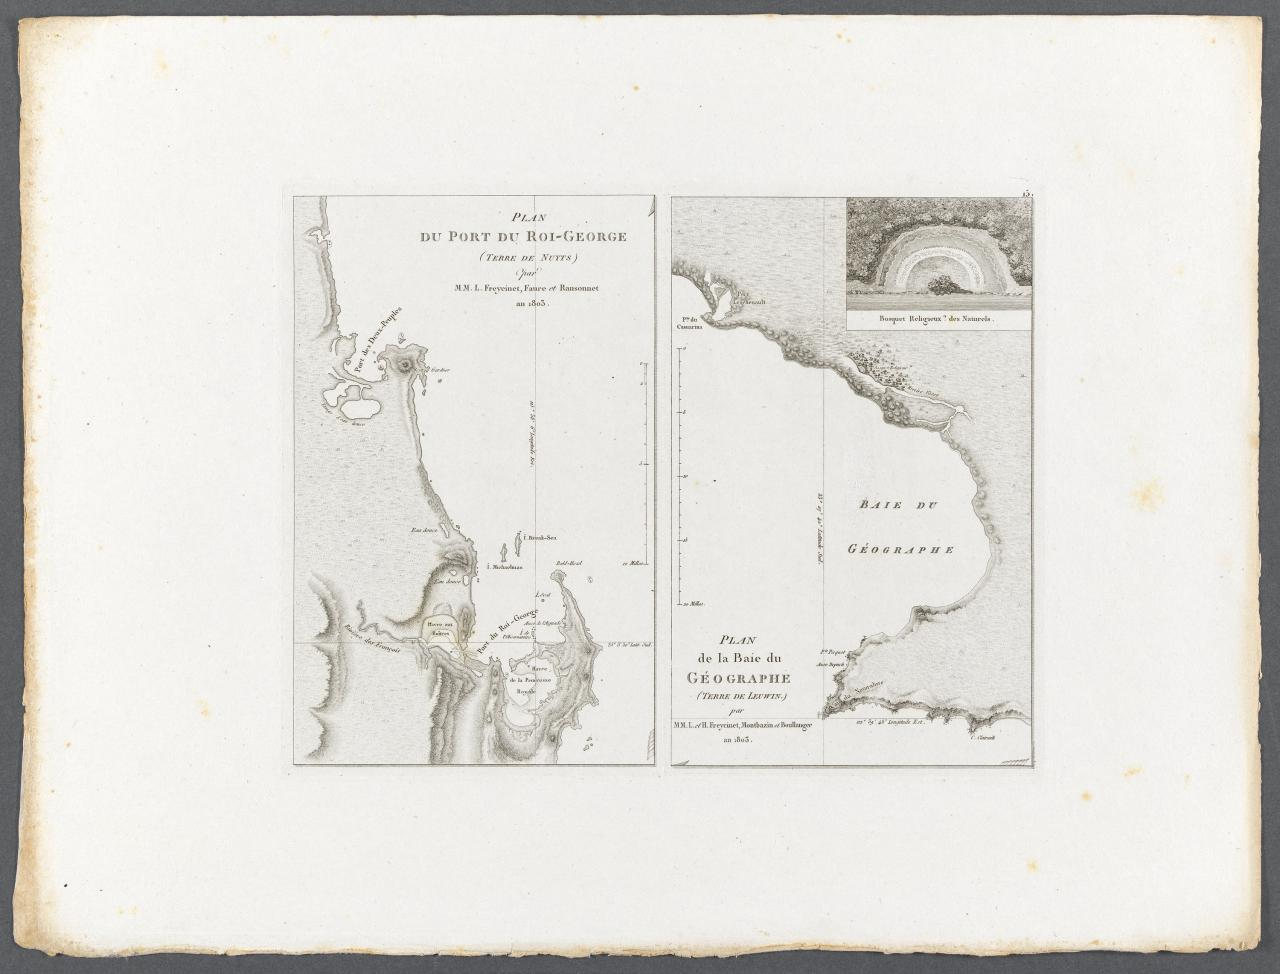 Plan of King George Sound, Nuyts Land (by Louis de Freycinet, Faure and Ransonnet, in the year 1803) Plan of Géographe Bay, Leeuwin Land (by Louise and Henri Freycinet, Montbazin and Boullanger, in the year 1803)